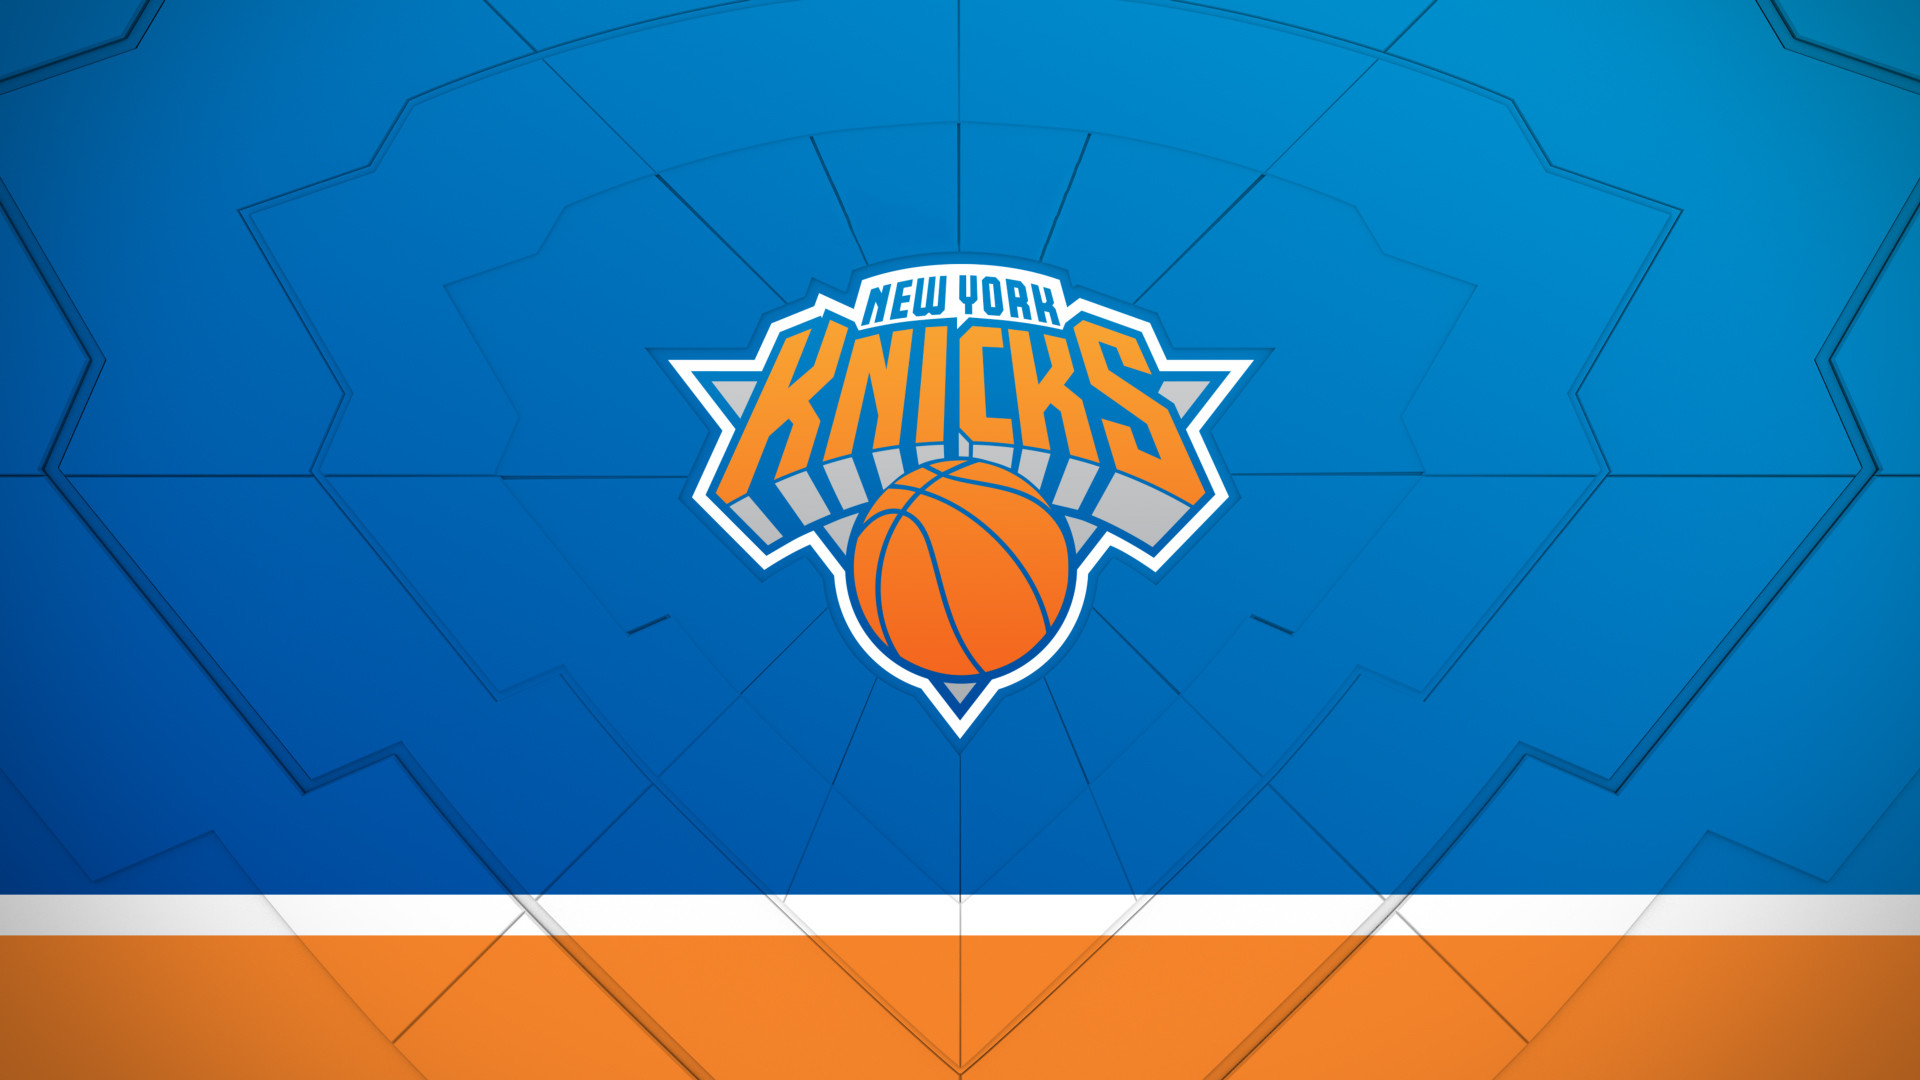 Res: 1920x1080, New York Knicks Wallpapers 17 - 1920 X 1080